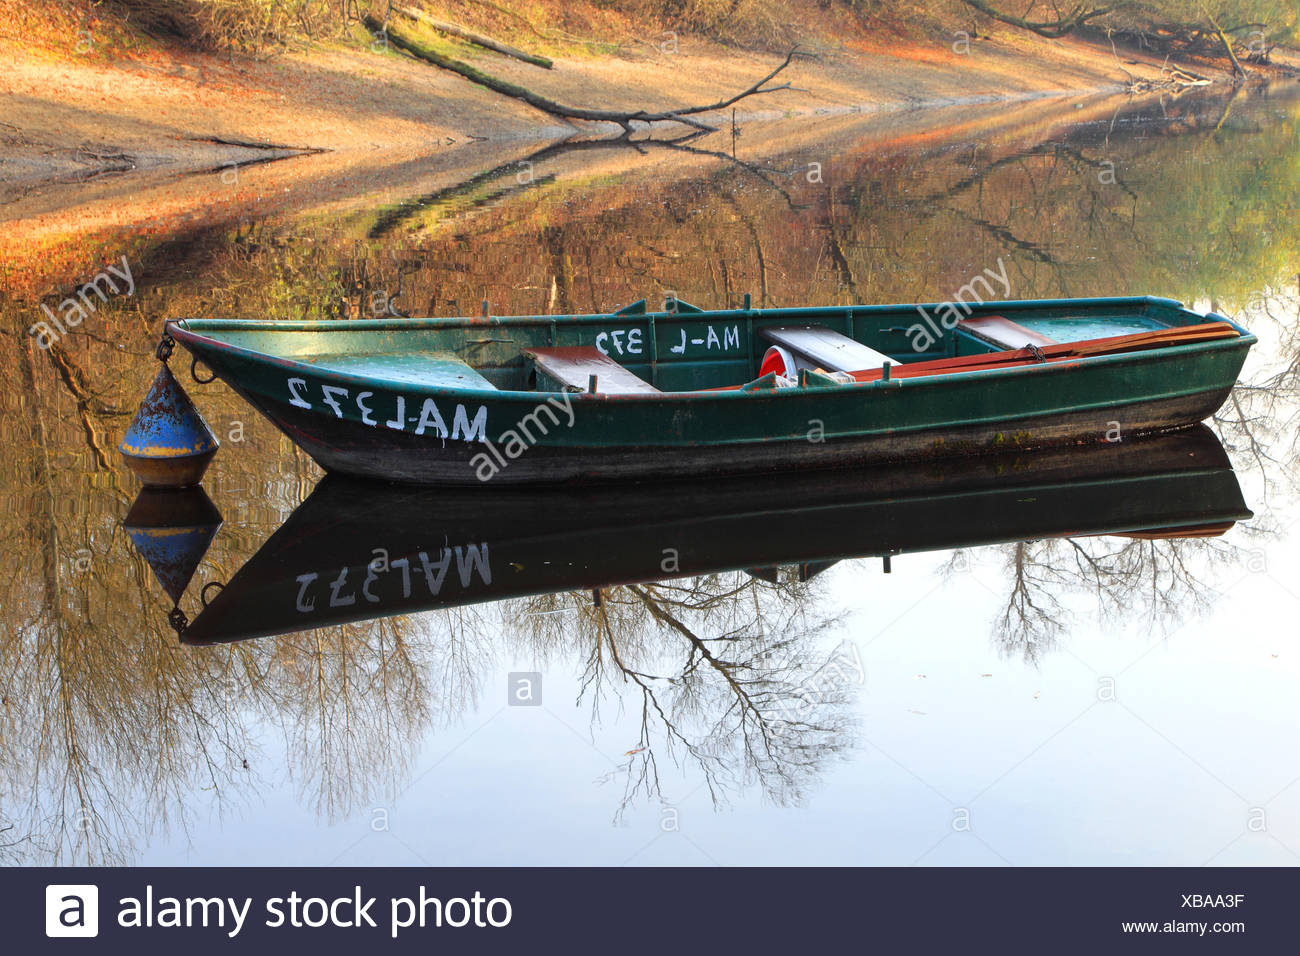 rowing boat at the shore of a water at an Old Rhine landscape, Germany - Stock Image